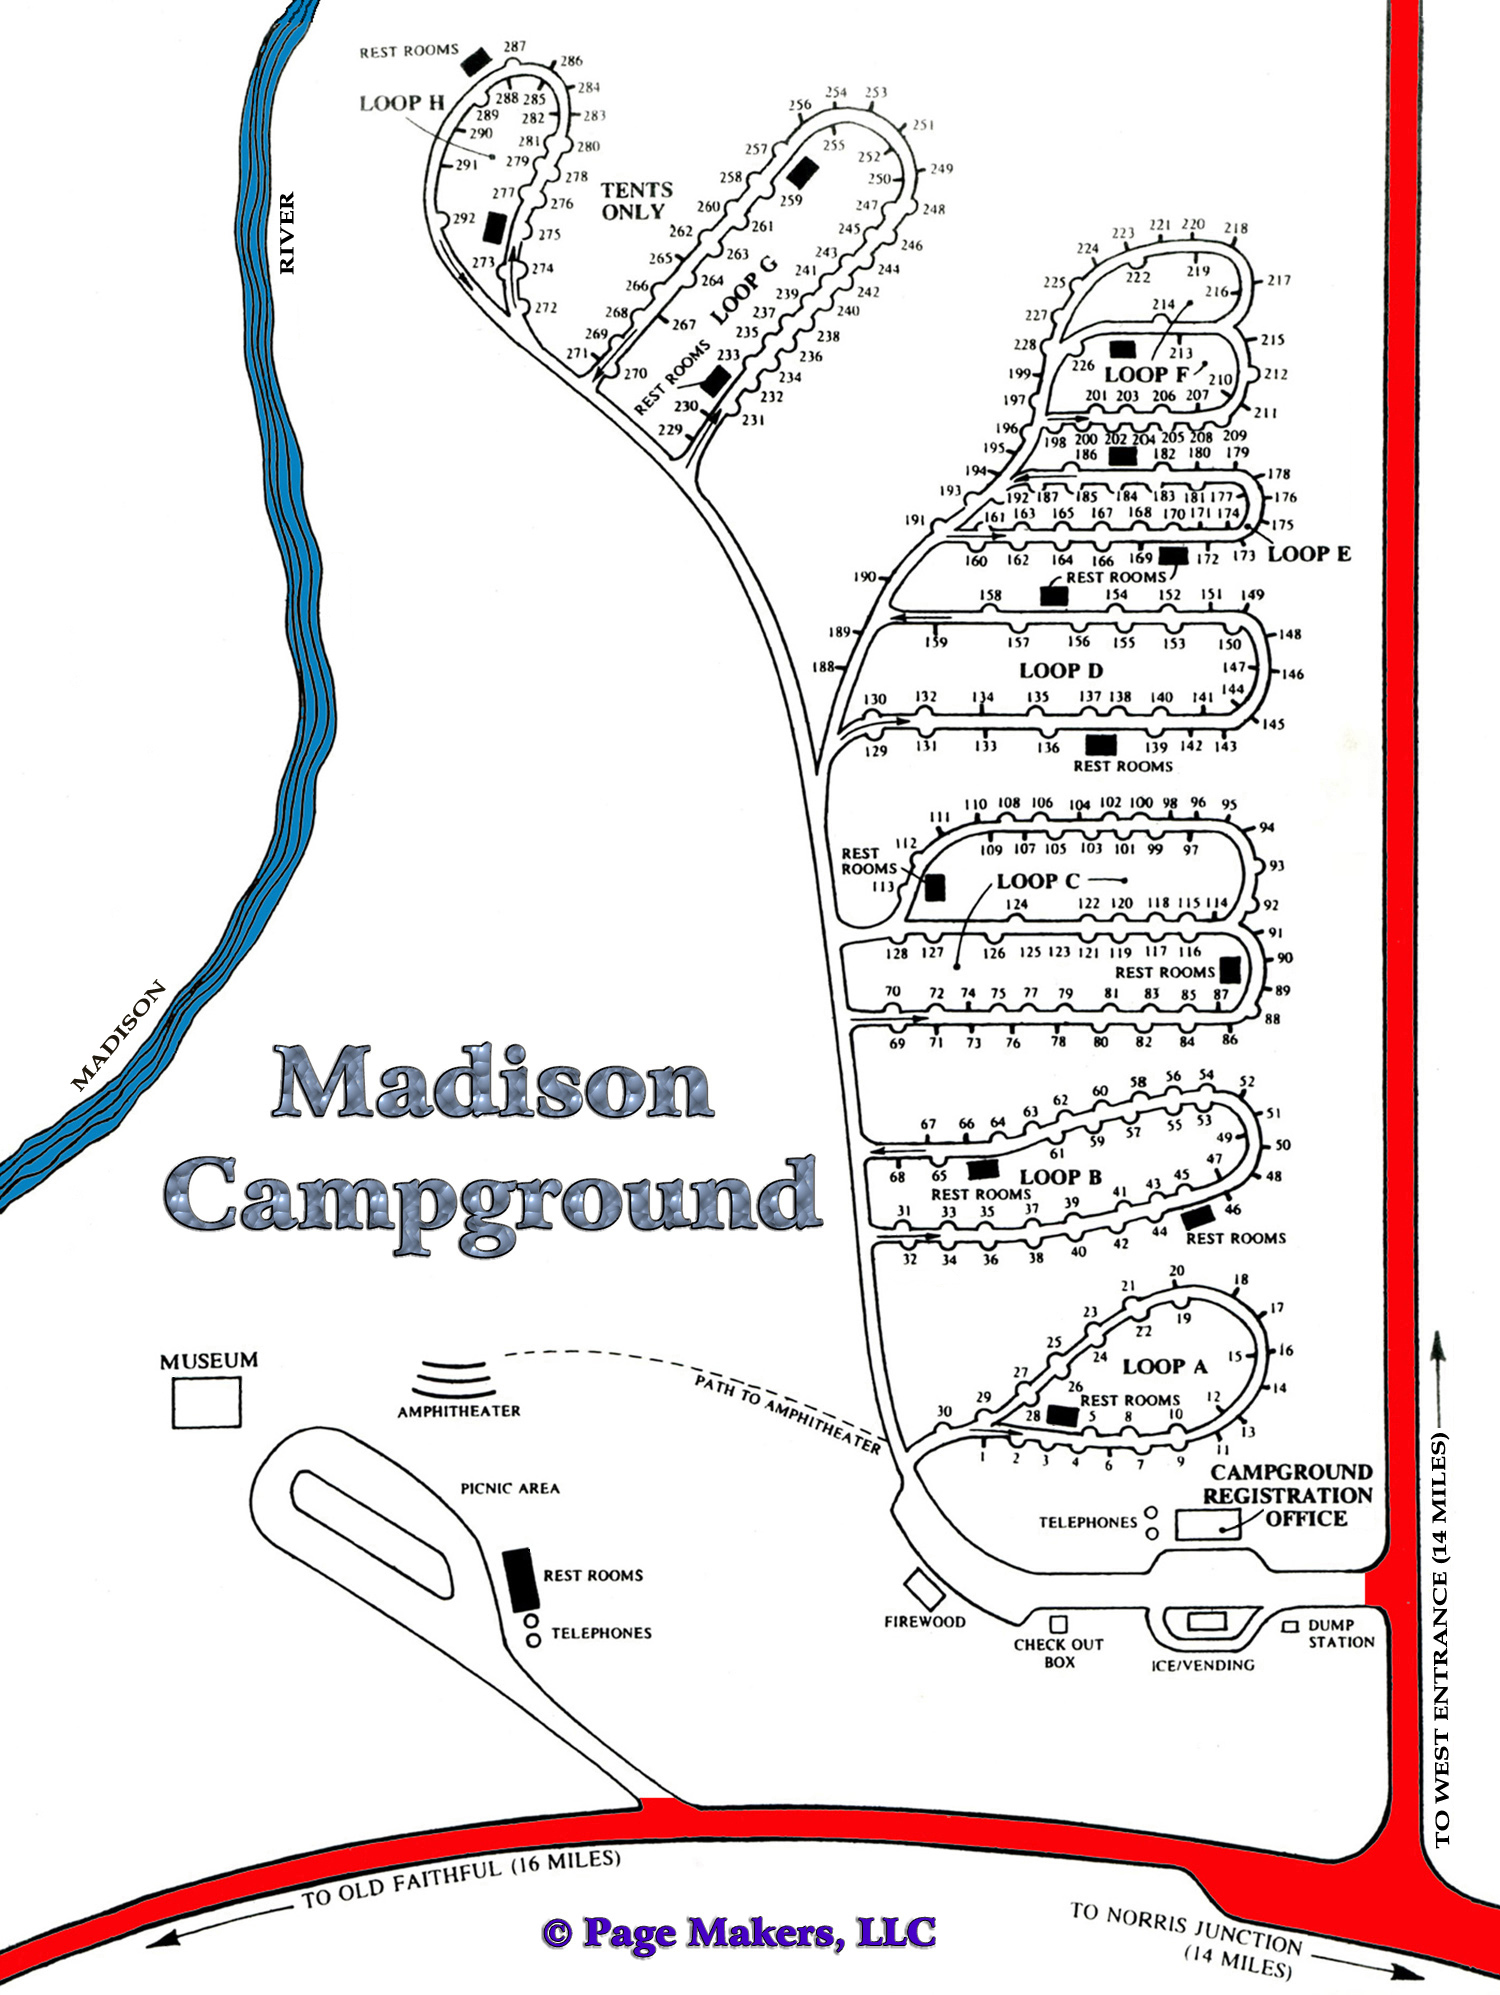 Madison Campground Map, Pictures and Video Yellowstone National Park on yosemite rv parks map, cody wyoming rv parks map, black hills rv parks map,